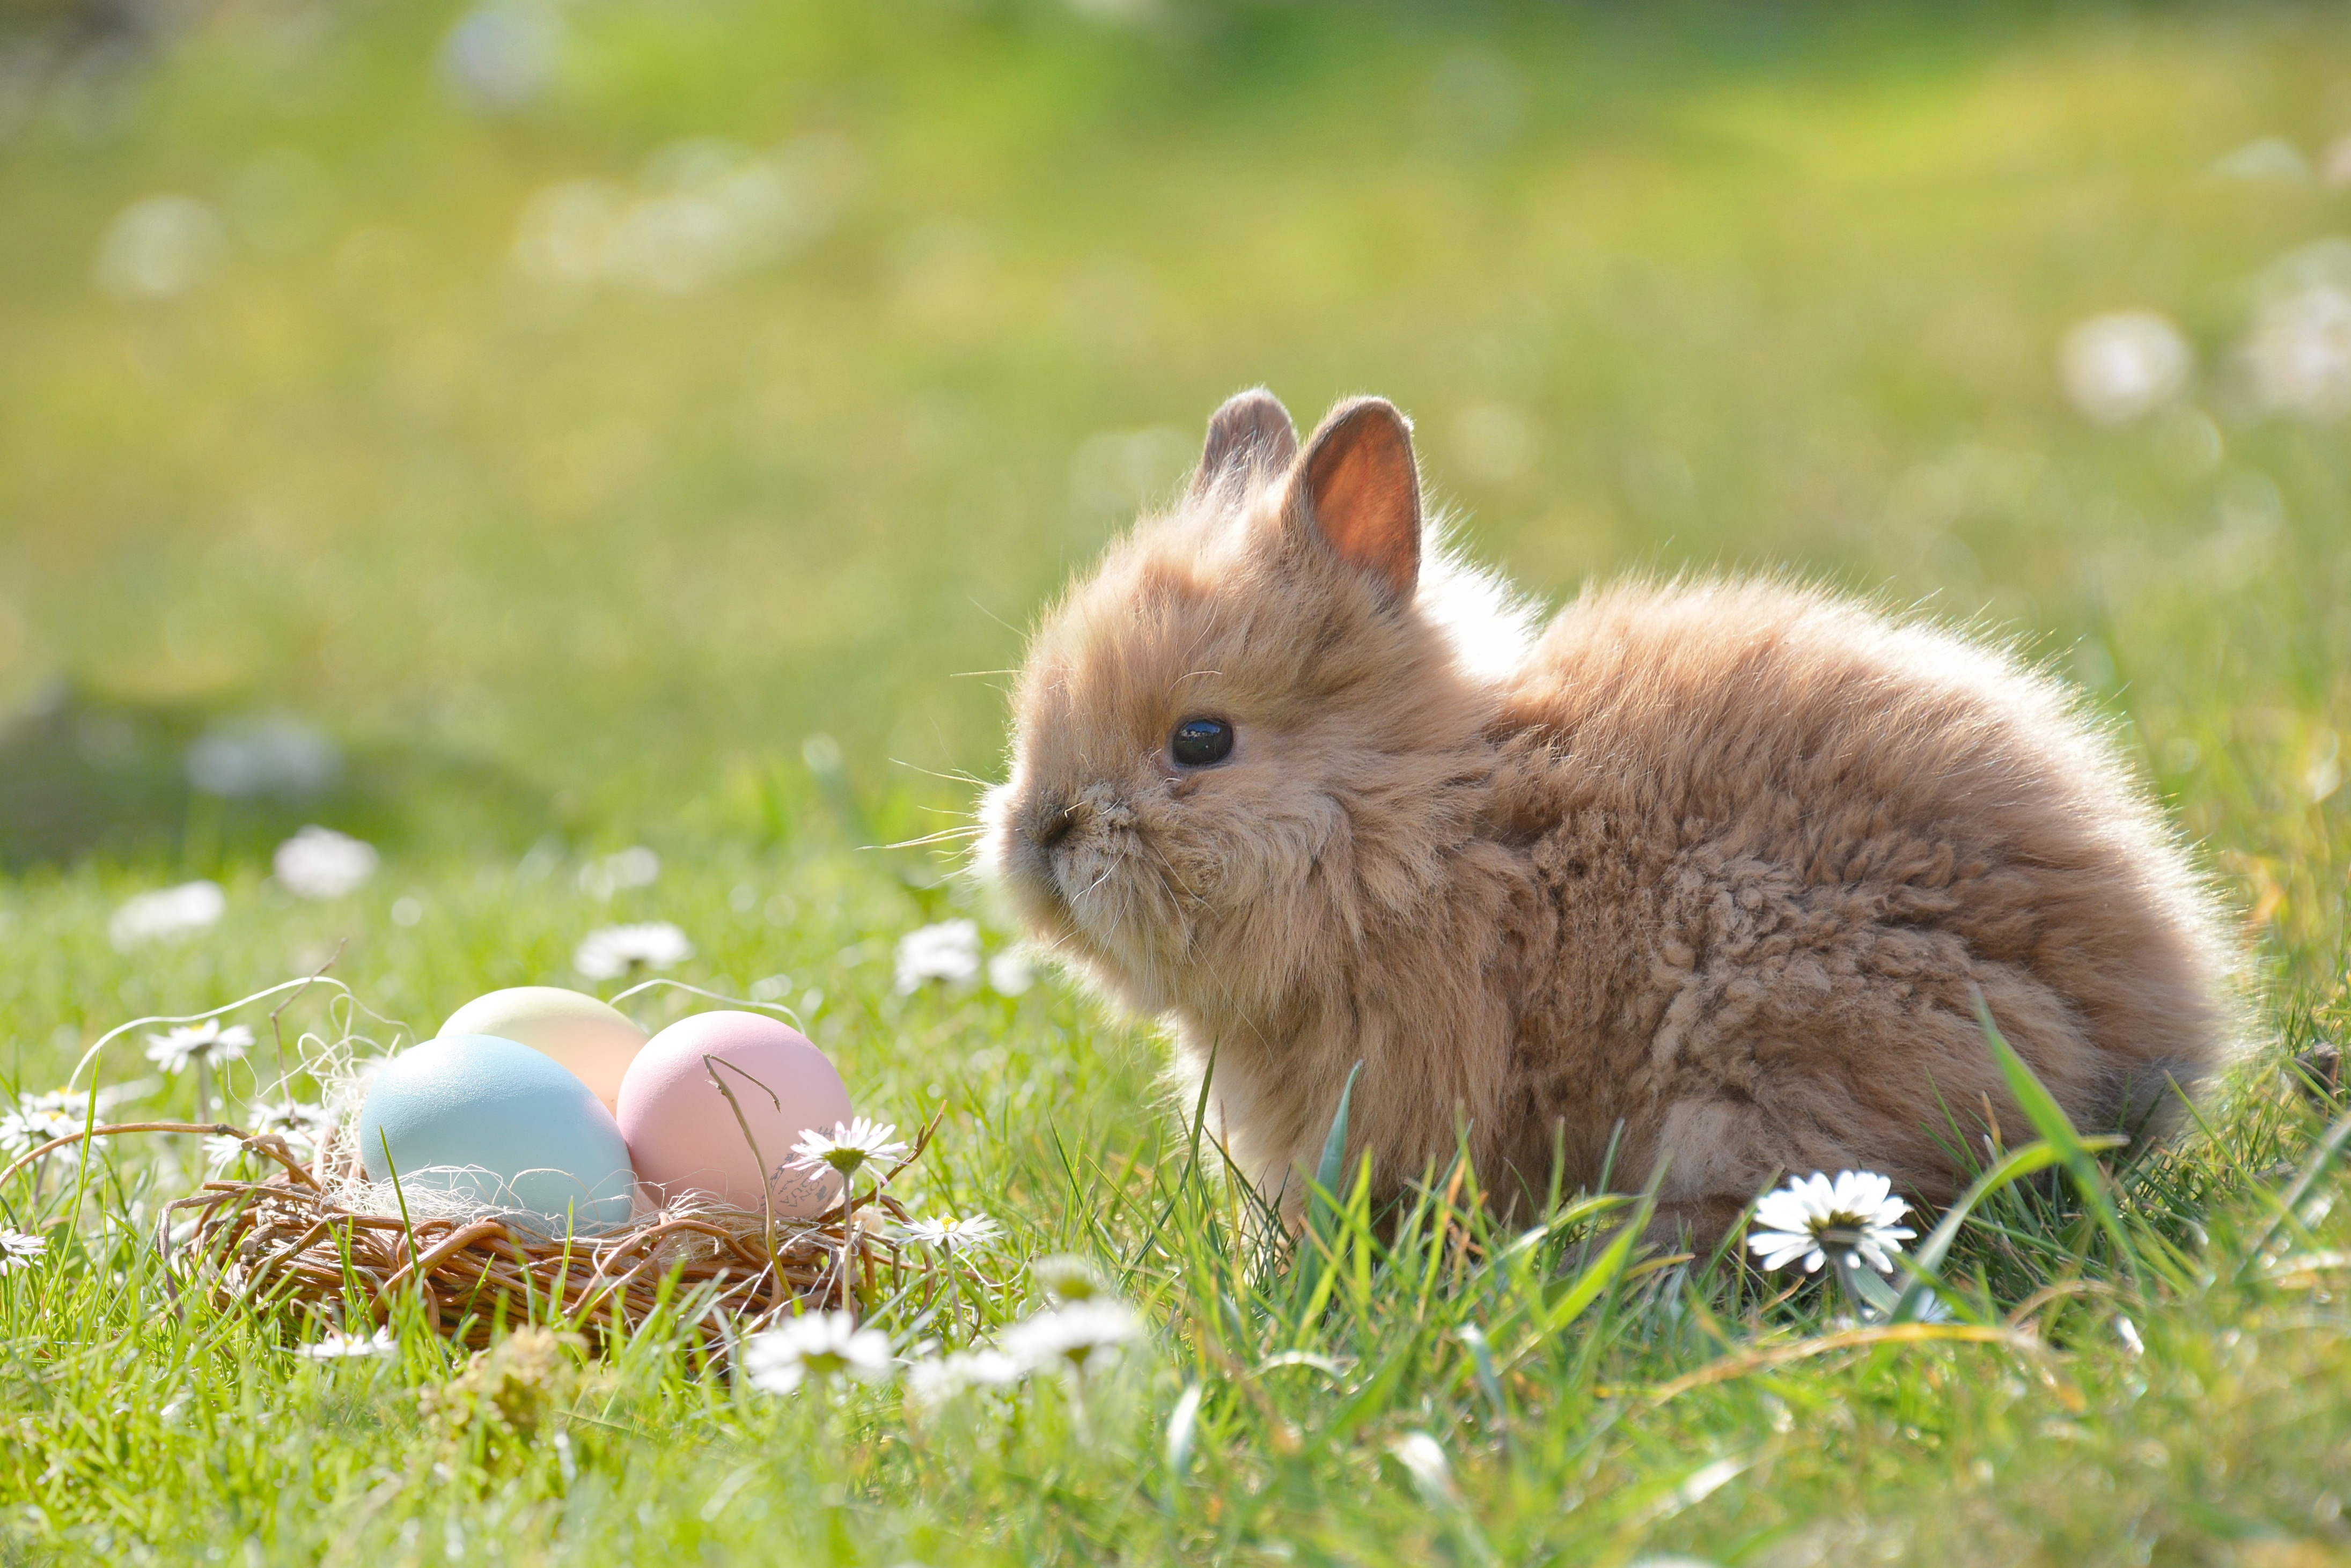 cute easter bunny before adding alana lee photography easter overlay